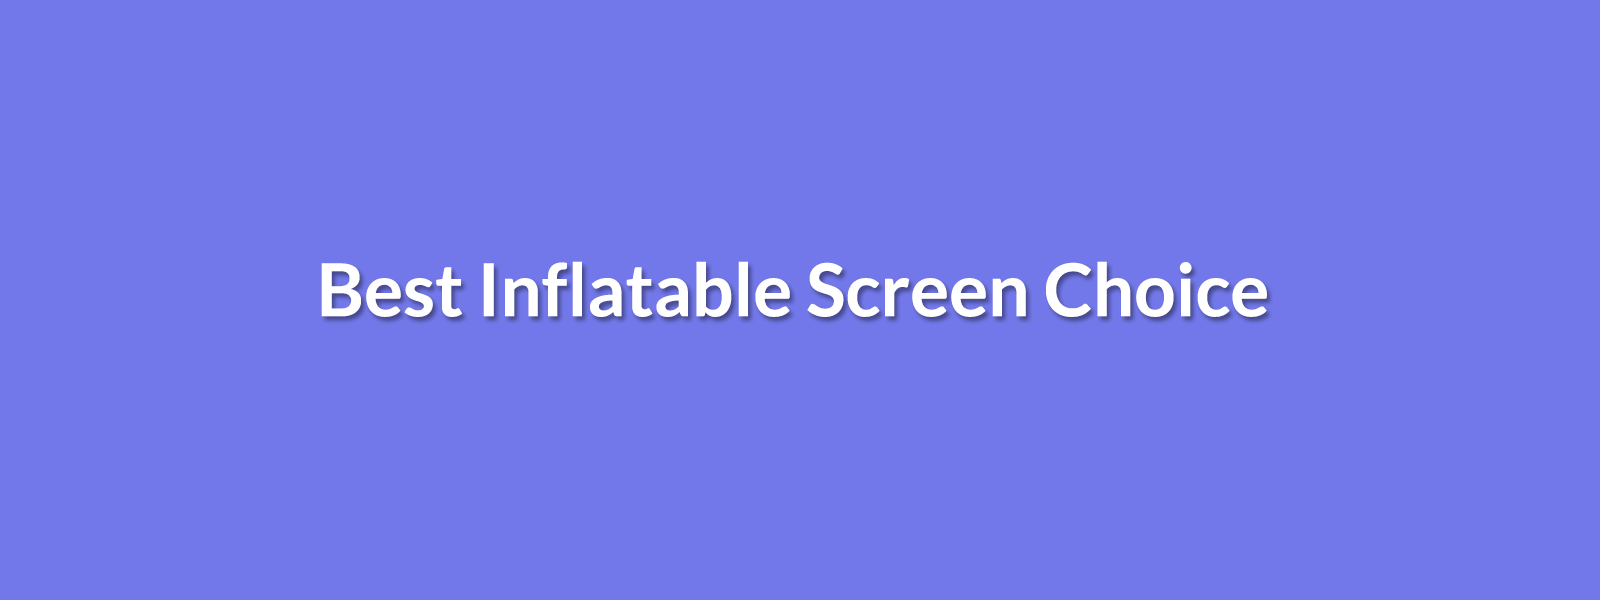 Best Inflatable Screen Choice